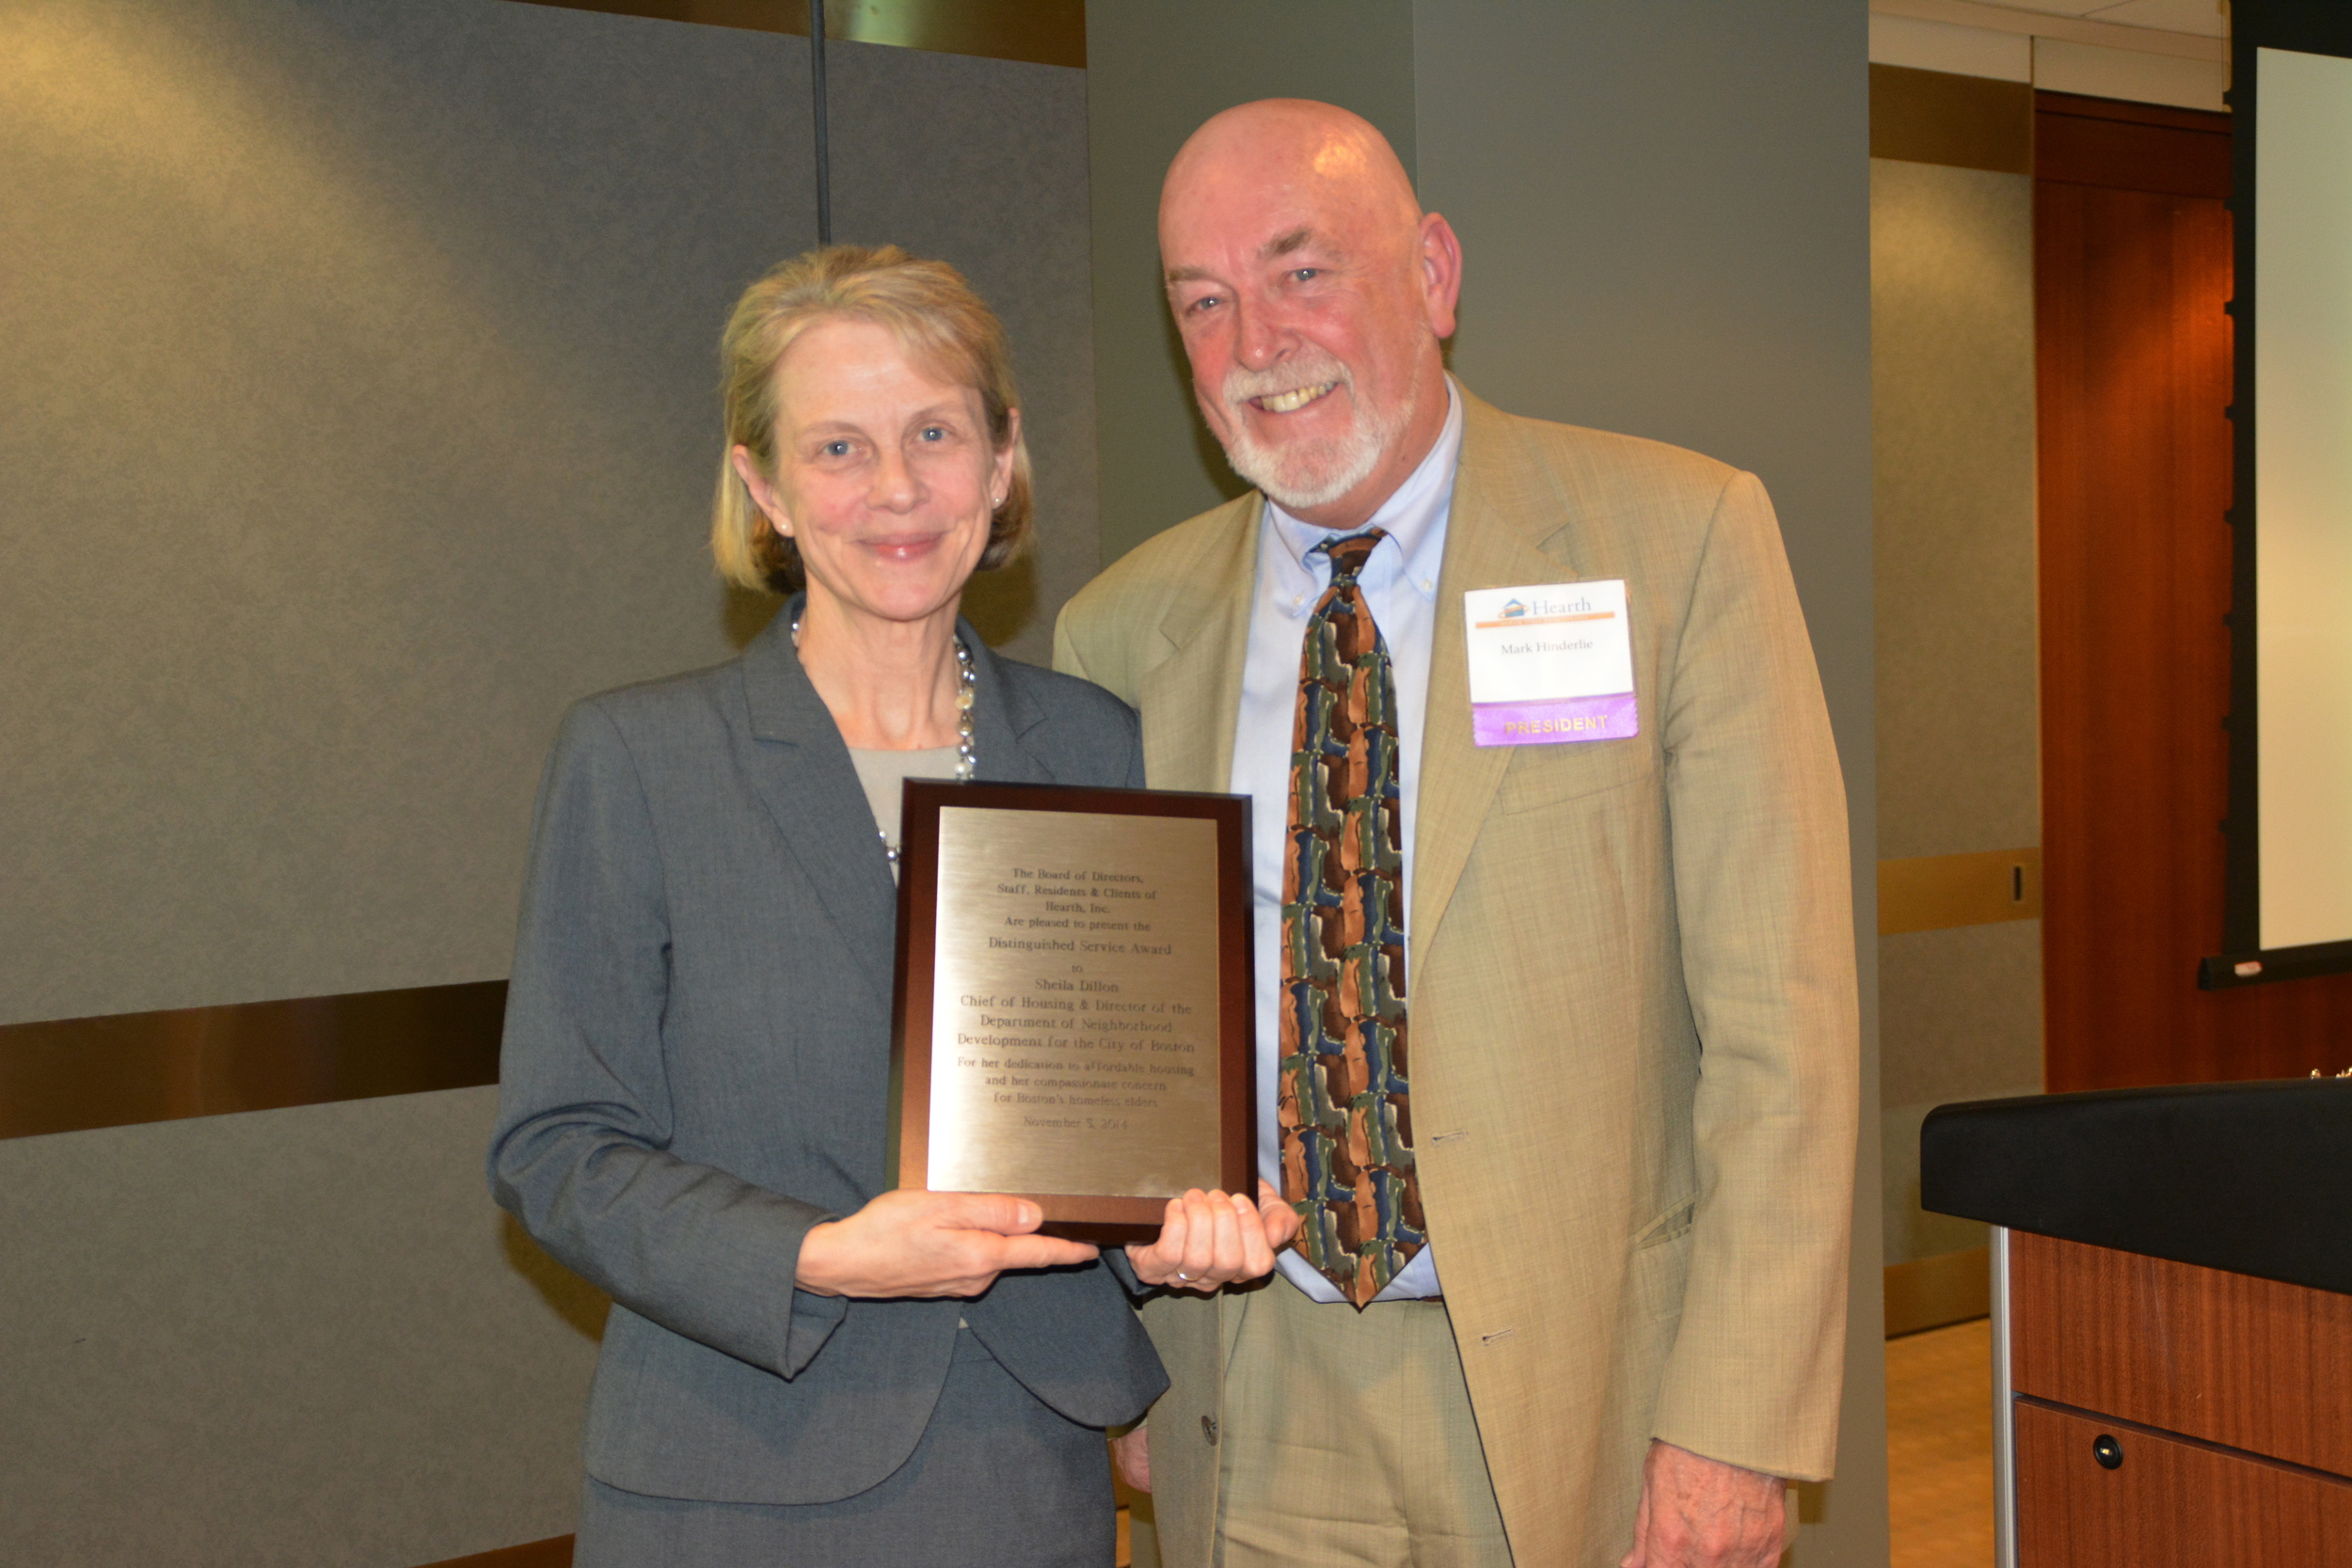 Mark with Distinguished Service Award Honoree Sheila Dillon, the City's Chief of Housing.